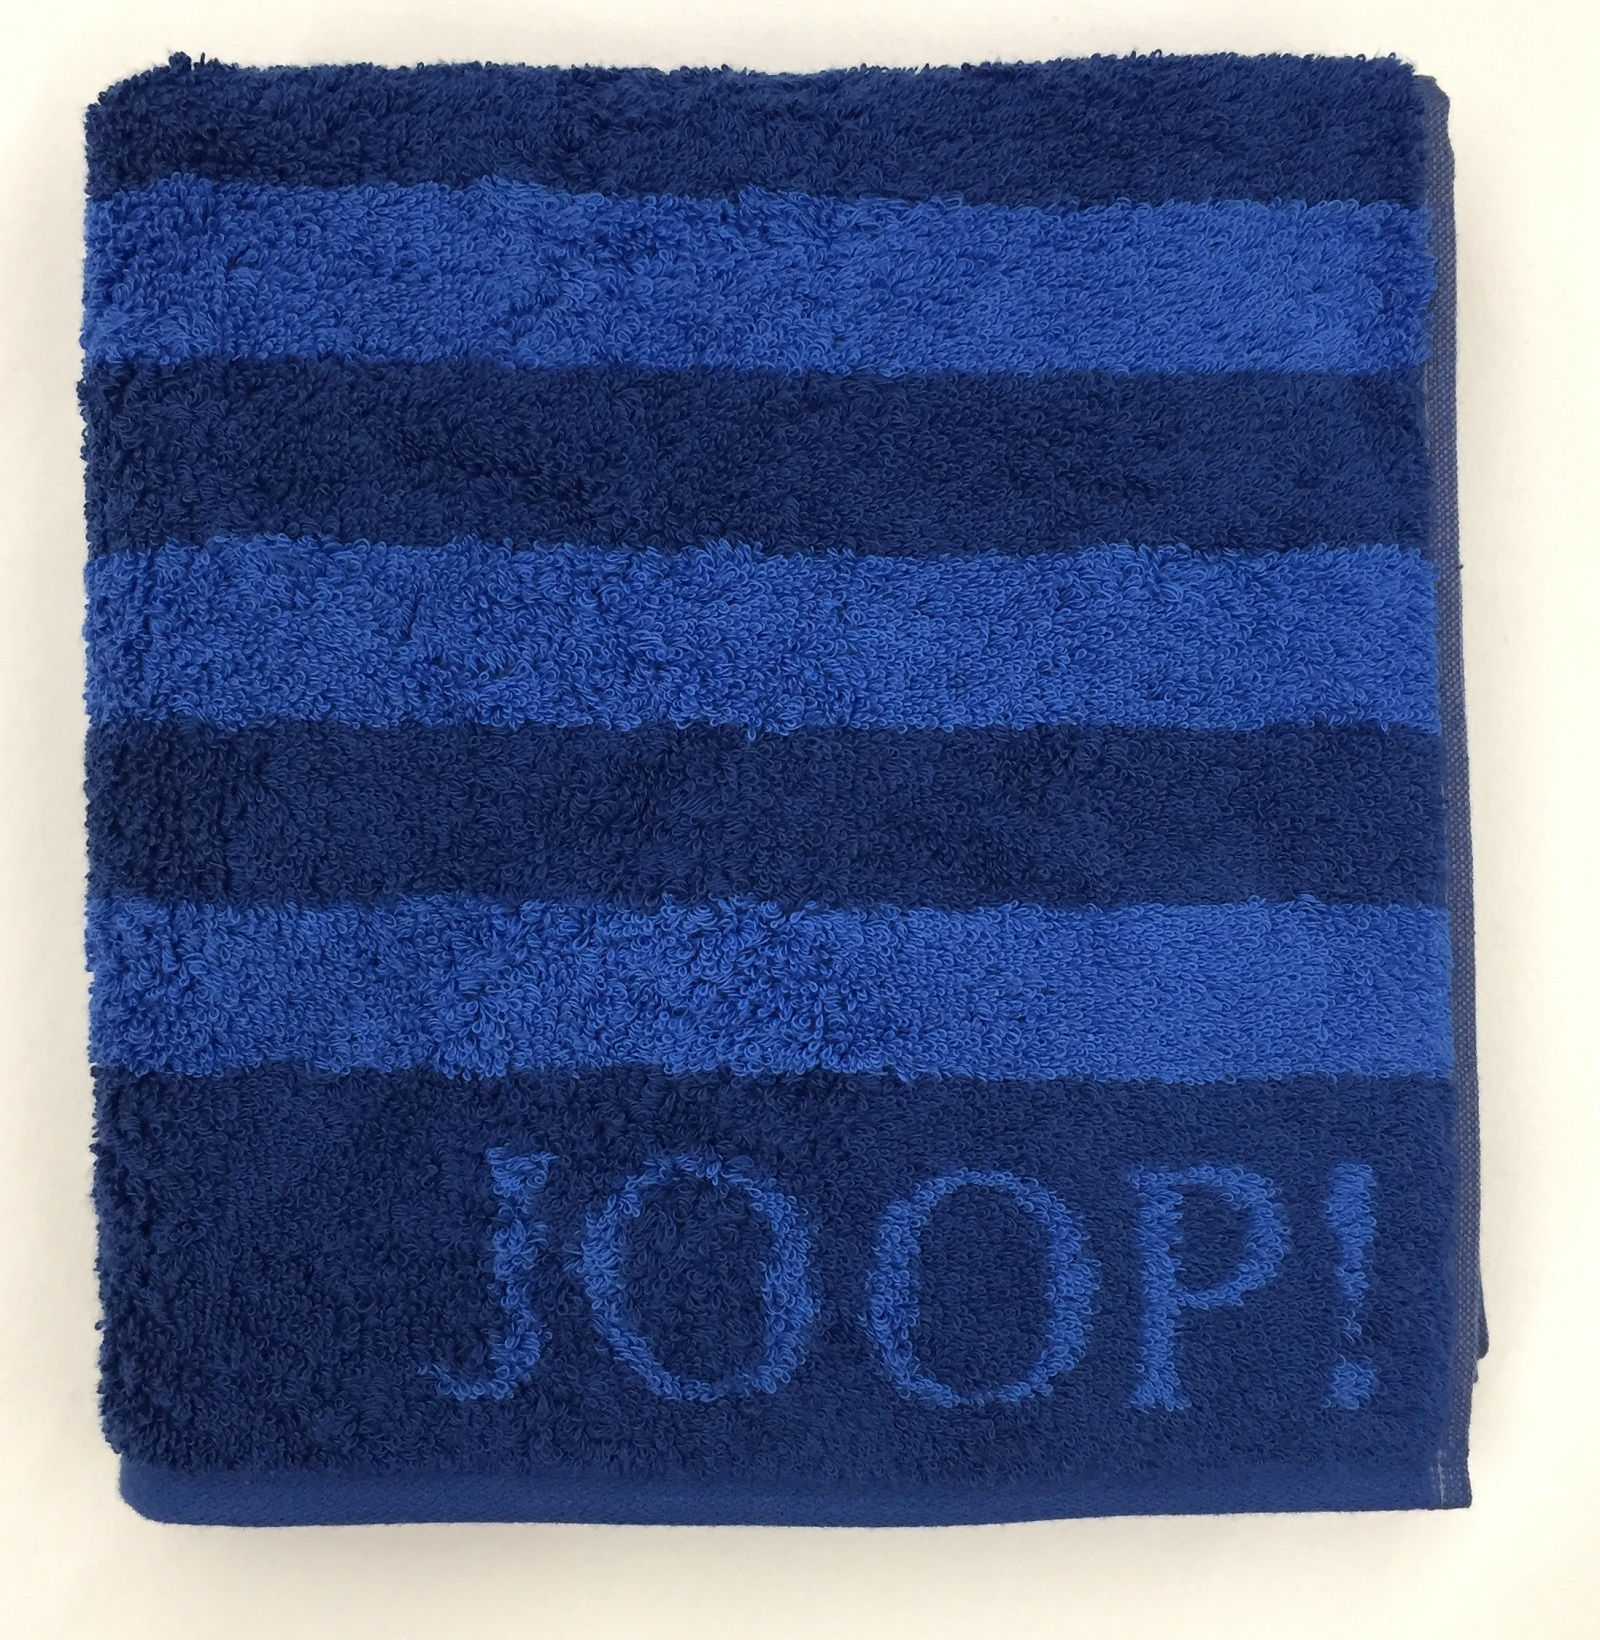 joop frottierkollektion classic 1610 stripes beste qualit t handtuch 13blau neu ebay. Black Bedroom Furniture Sets. Home Design Ideas